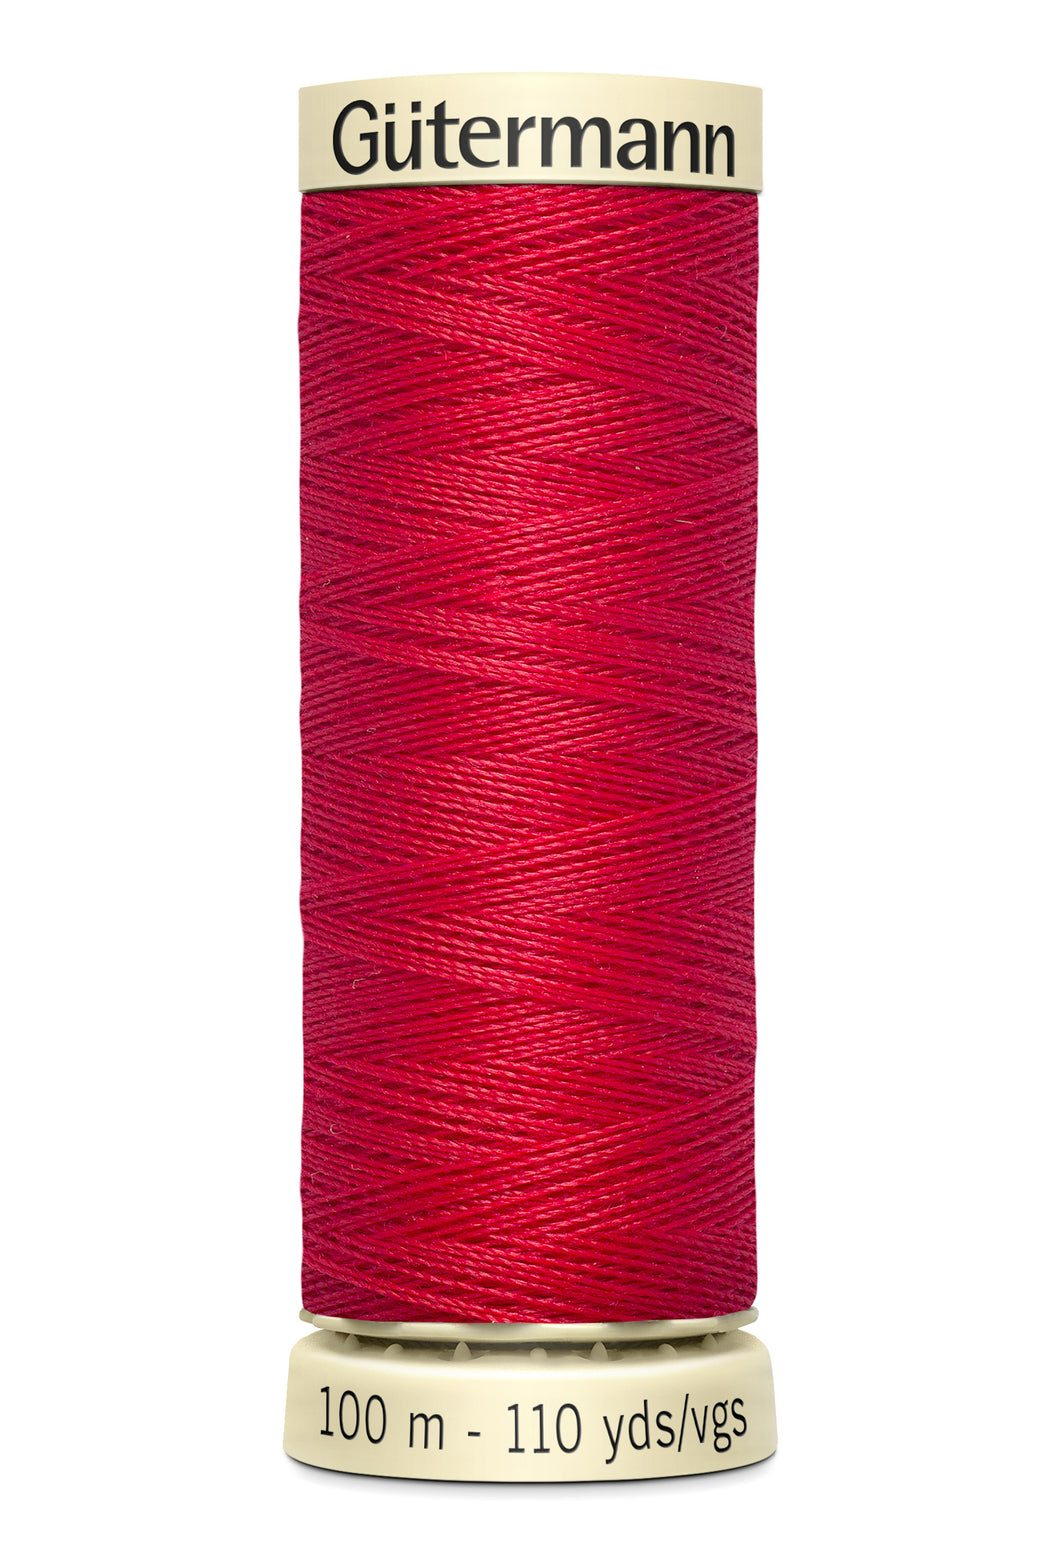 Gutermann Sew All Thread - Colour 156 Red